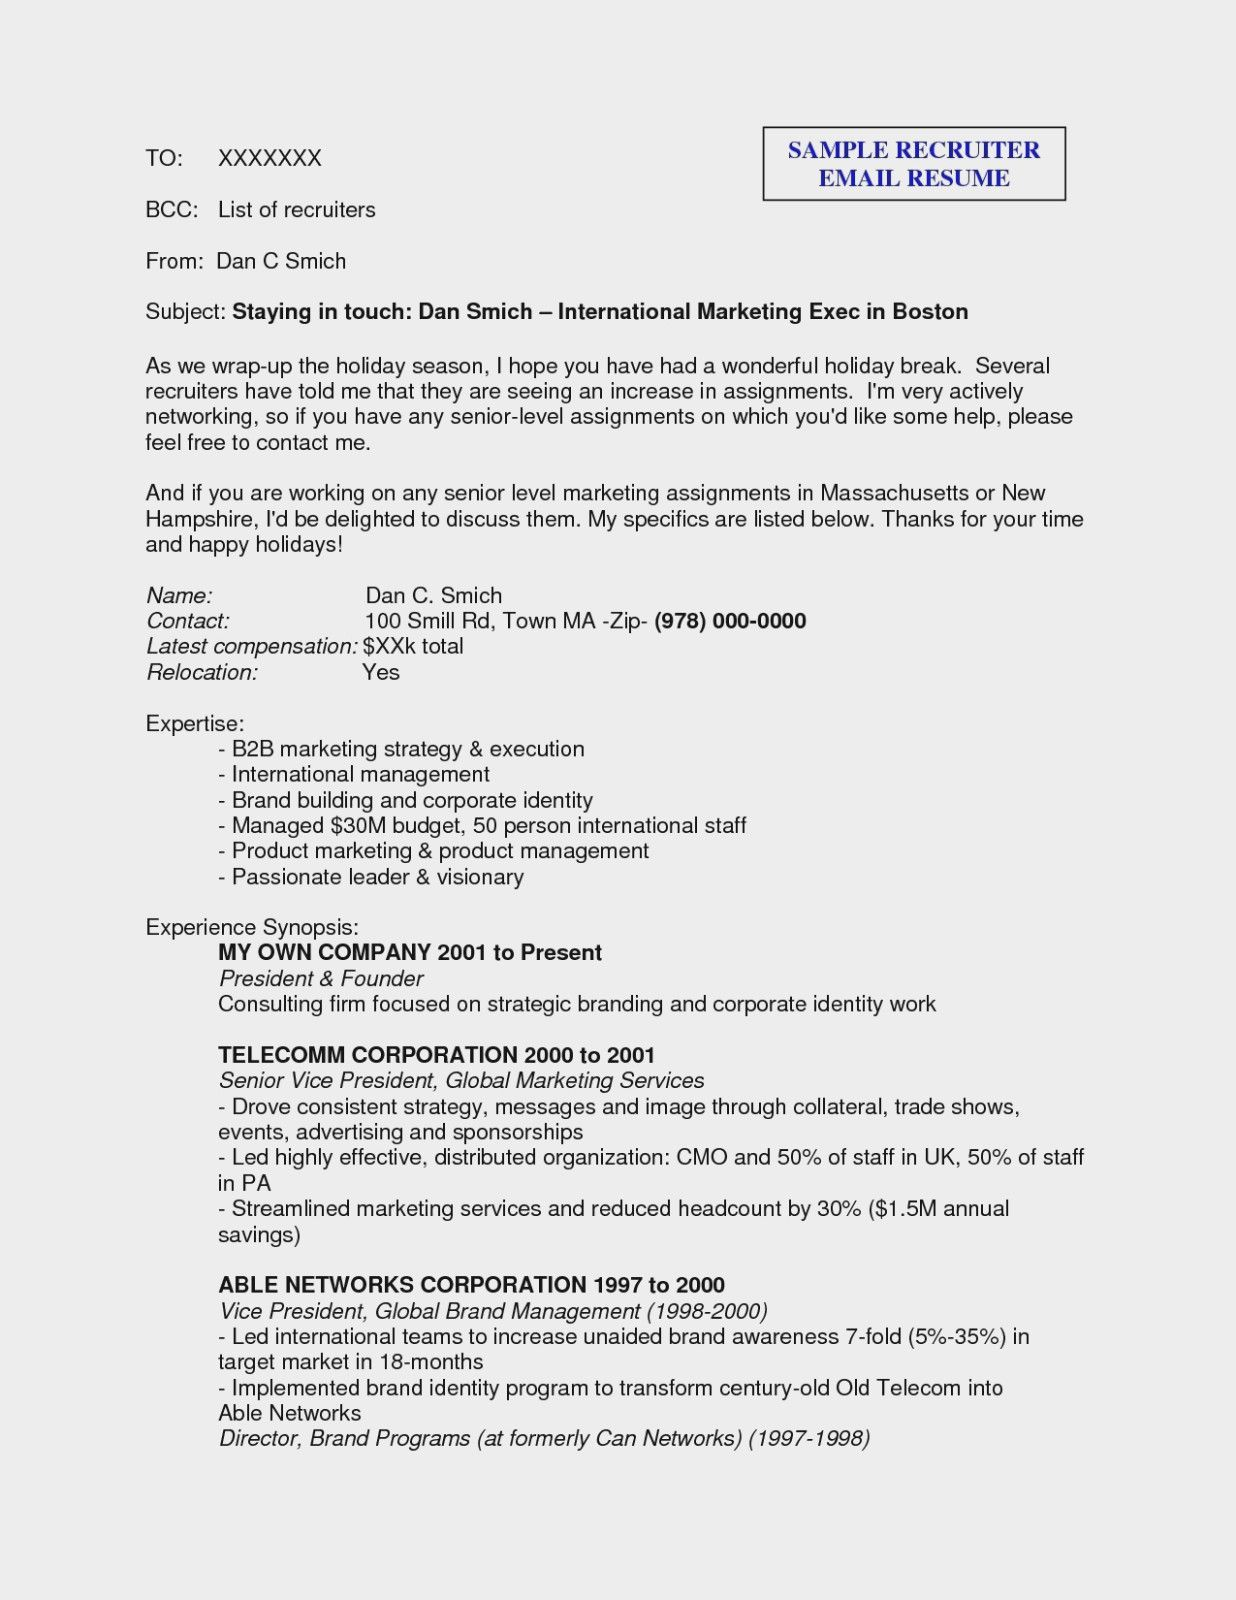 Ehrfurchtig Send Resume To Recruiter 10 Facts You Never Knew About Sending How To Send Resume For Job Resume Ideas Corporate Recruiter Resume Resume Job Resume